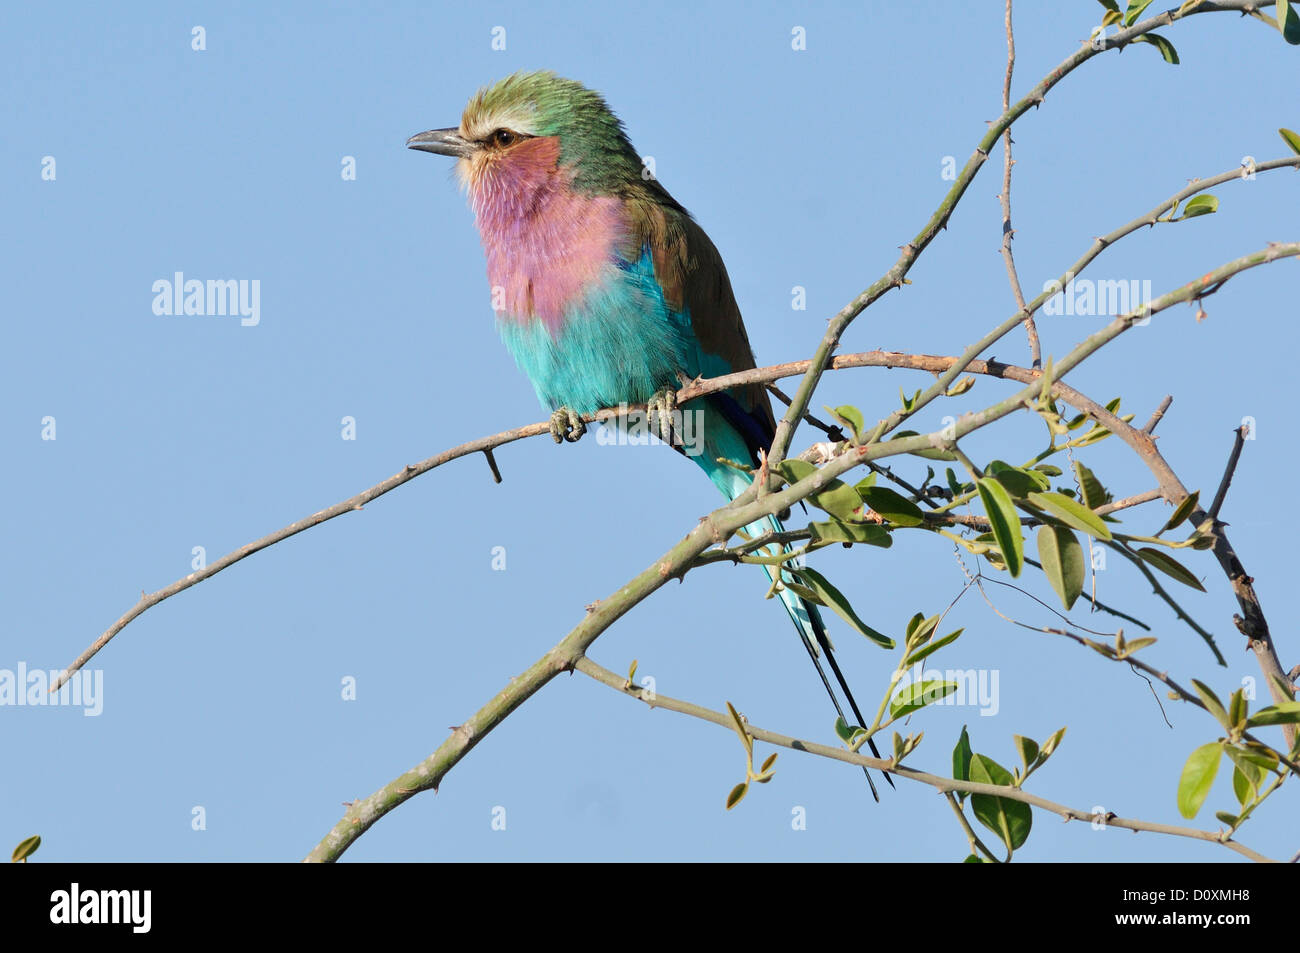 Africa, Botswana, Chobe, National Park, wildlife, Lilac-breasted Roller, Coracias caudatus, perch, bill, feeding, - Stock Image